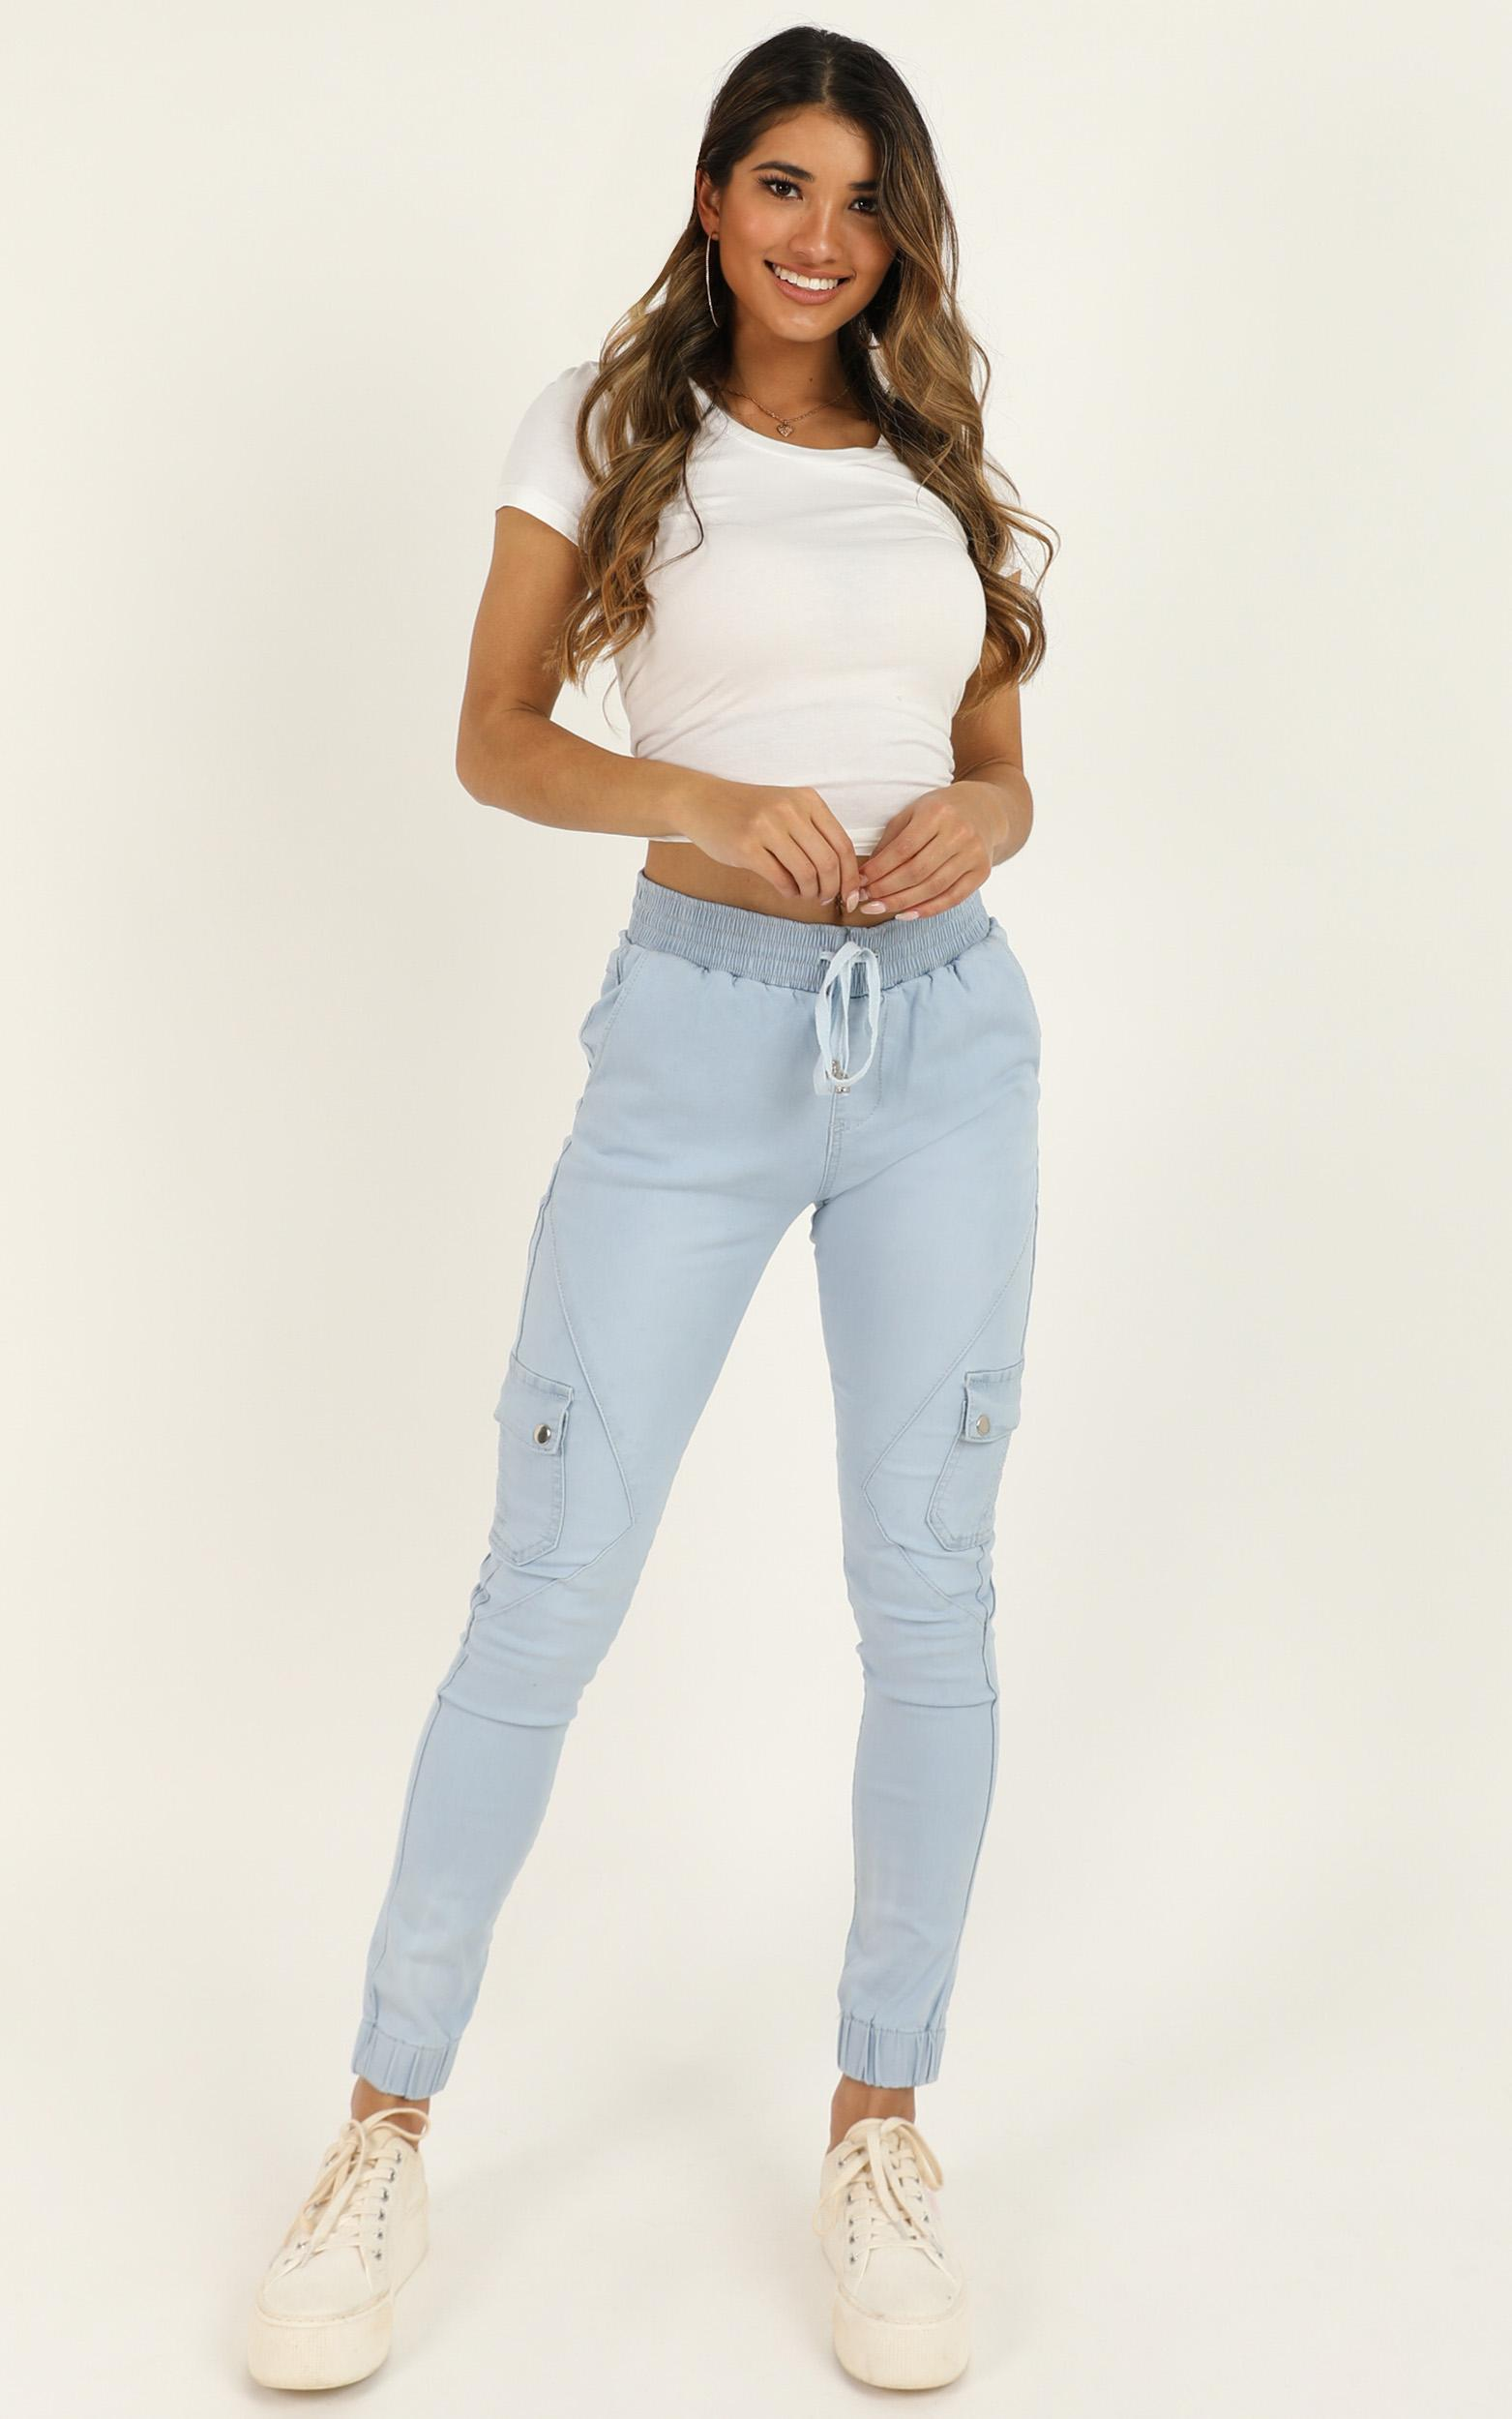 Claire Jeans In light wash denim - 14 (XL), BLU2, hi-res image number null